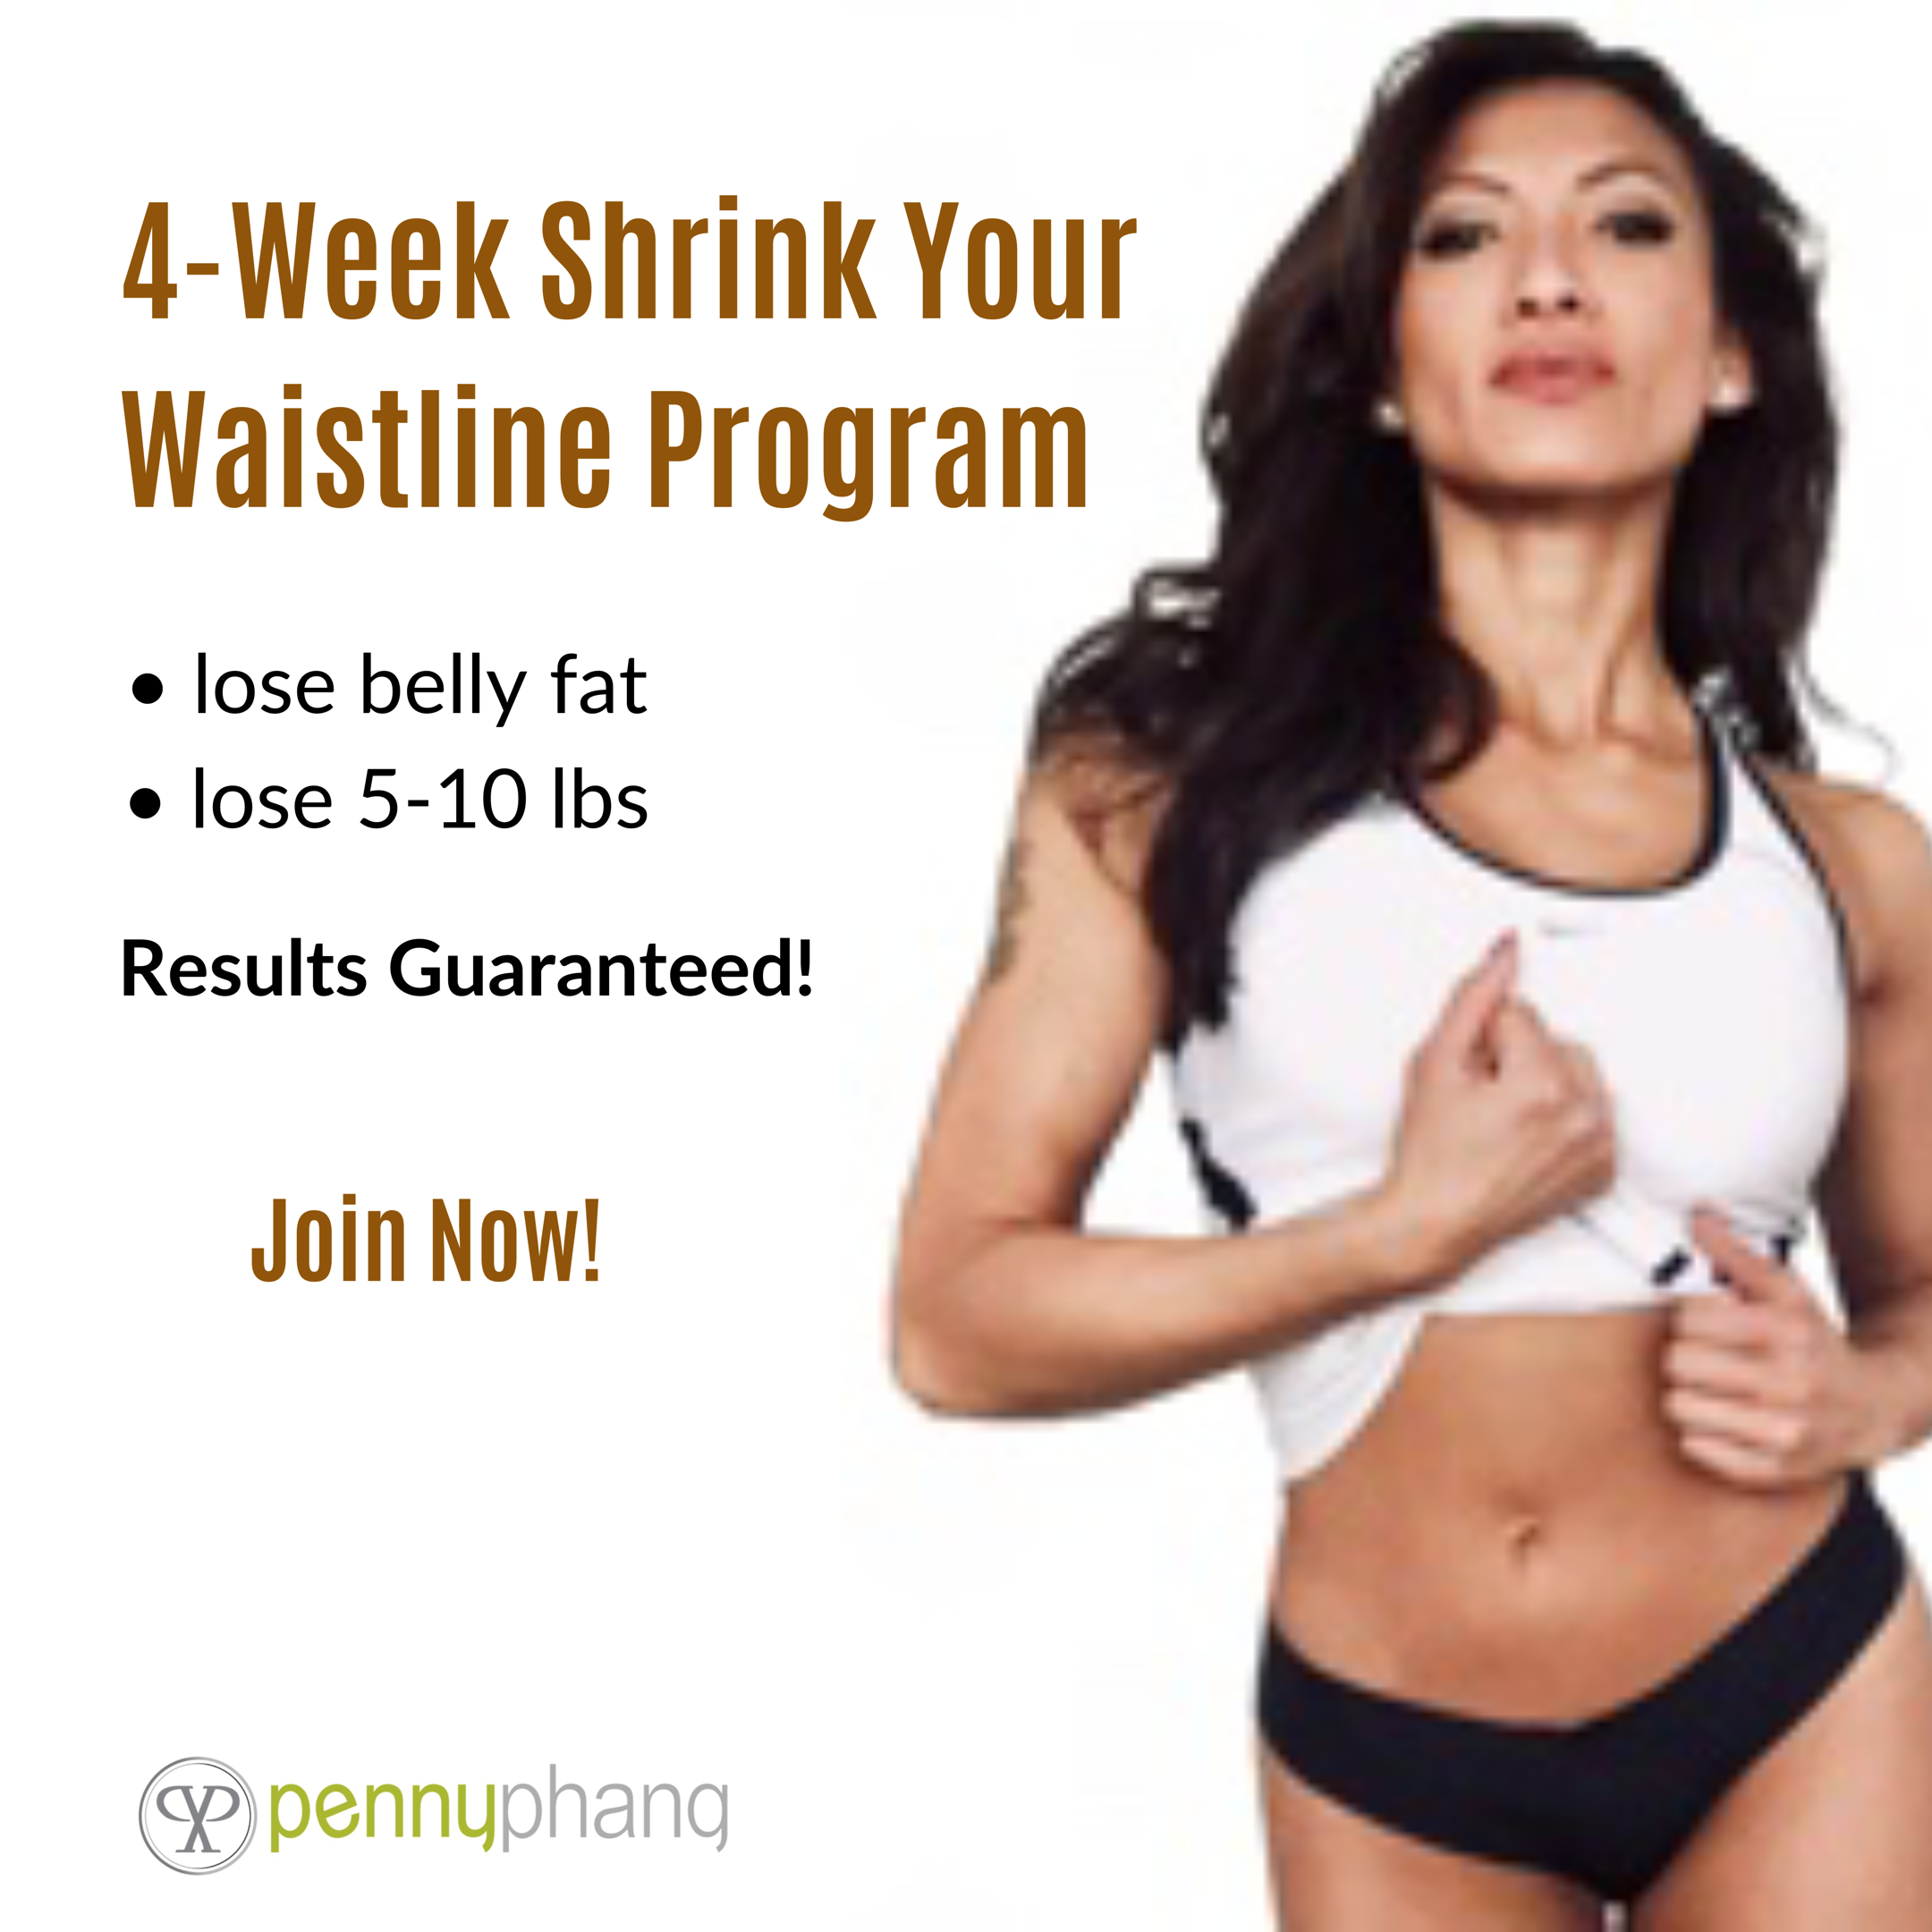 4-Week Shrink Your Waistline Program | with Penny Phang, Wellness Specialist and Personal Trainer